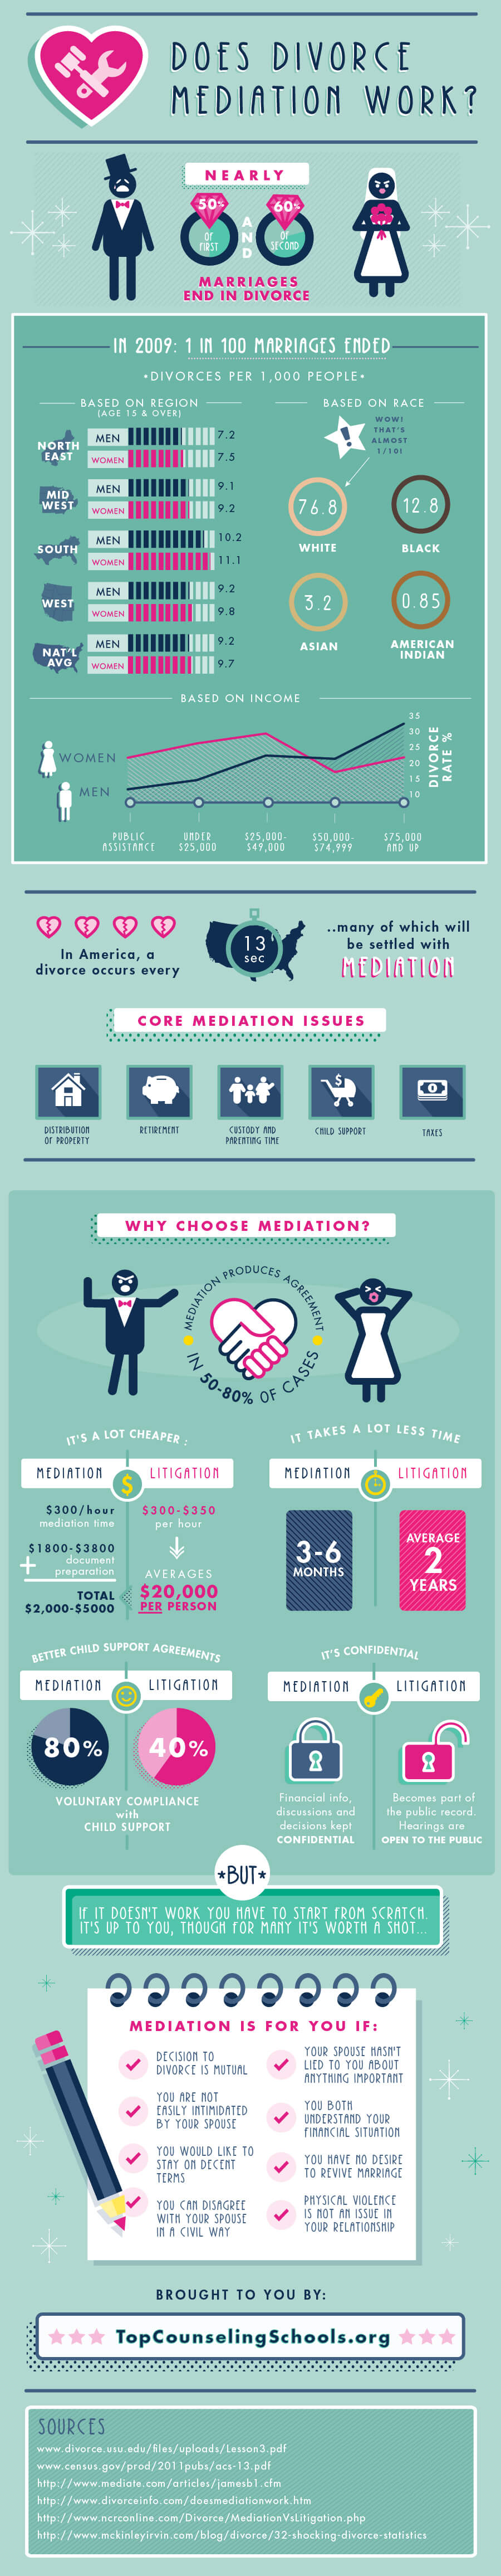 Why Divorce Mediation Works Infographic by topcounselingschools.org